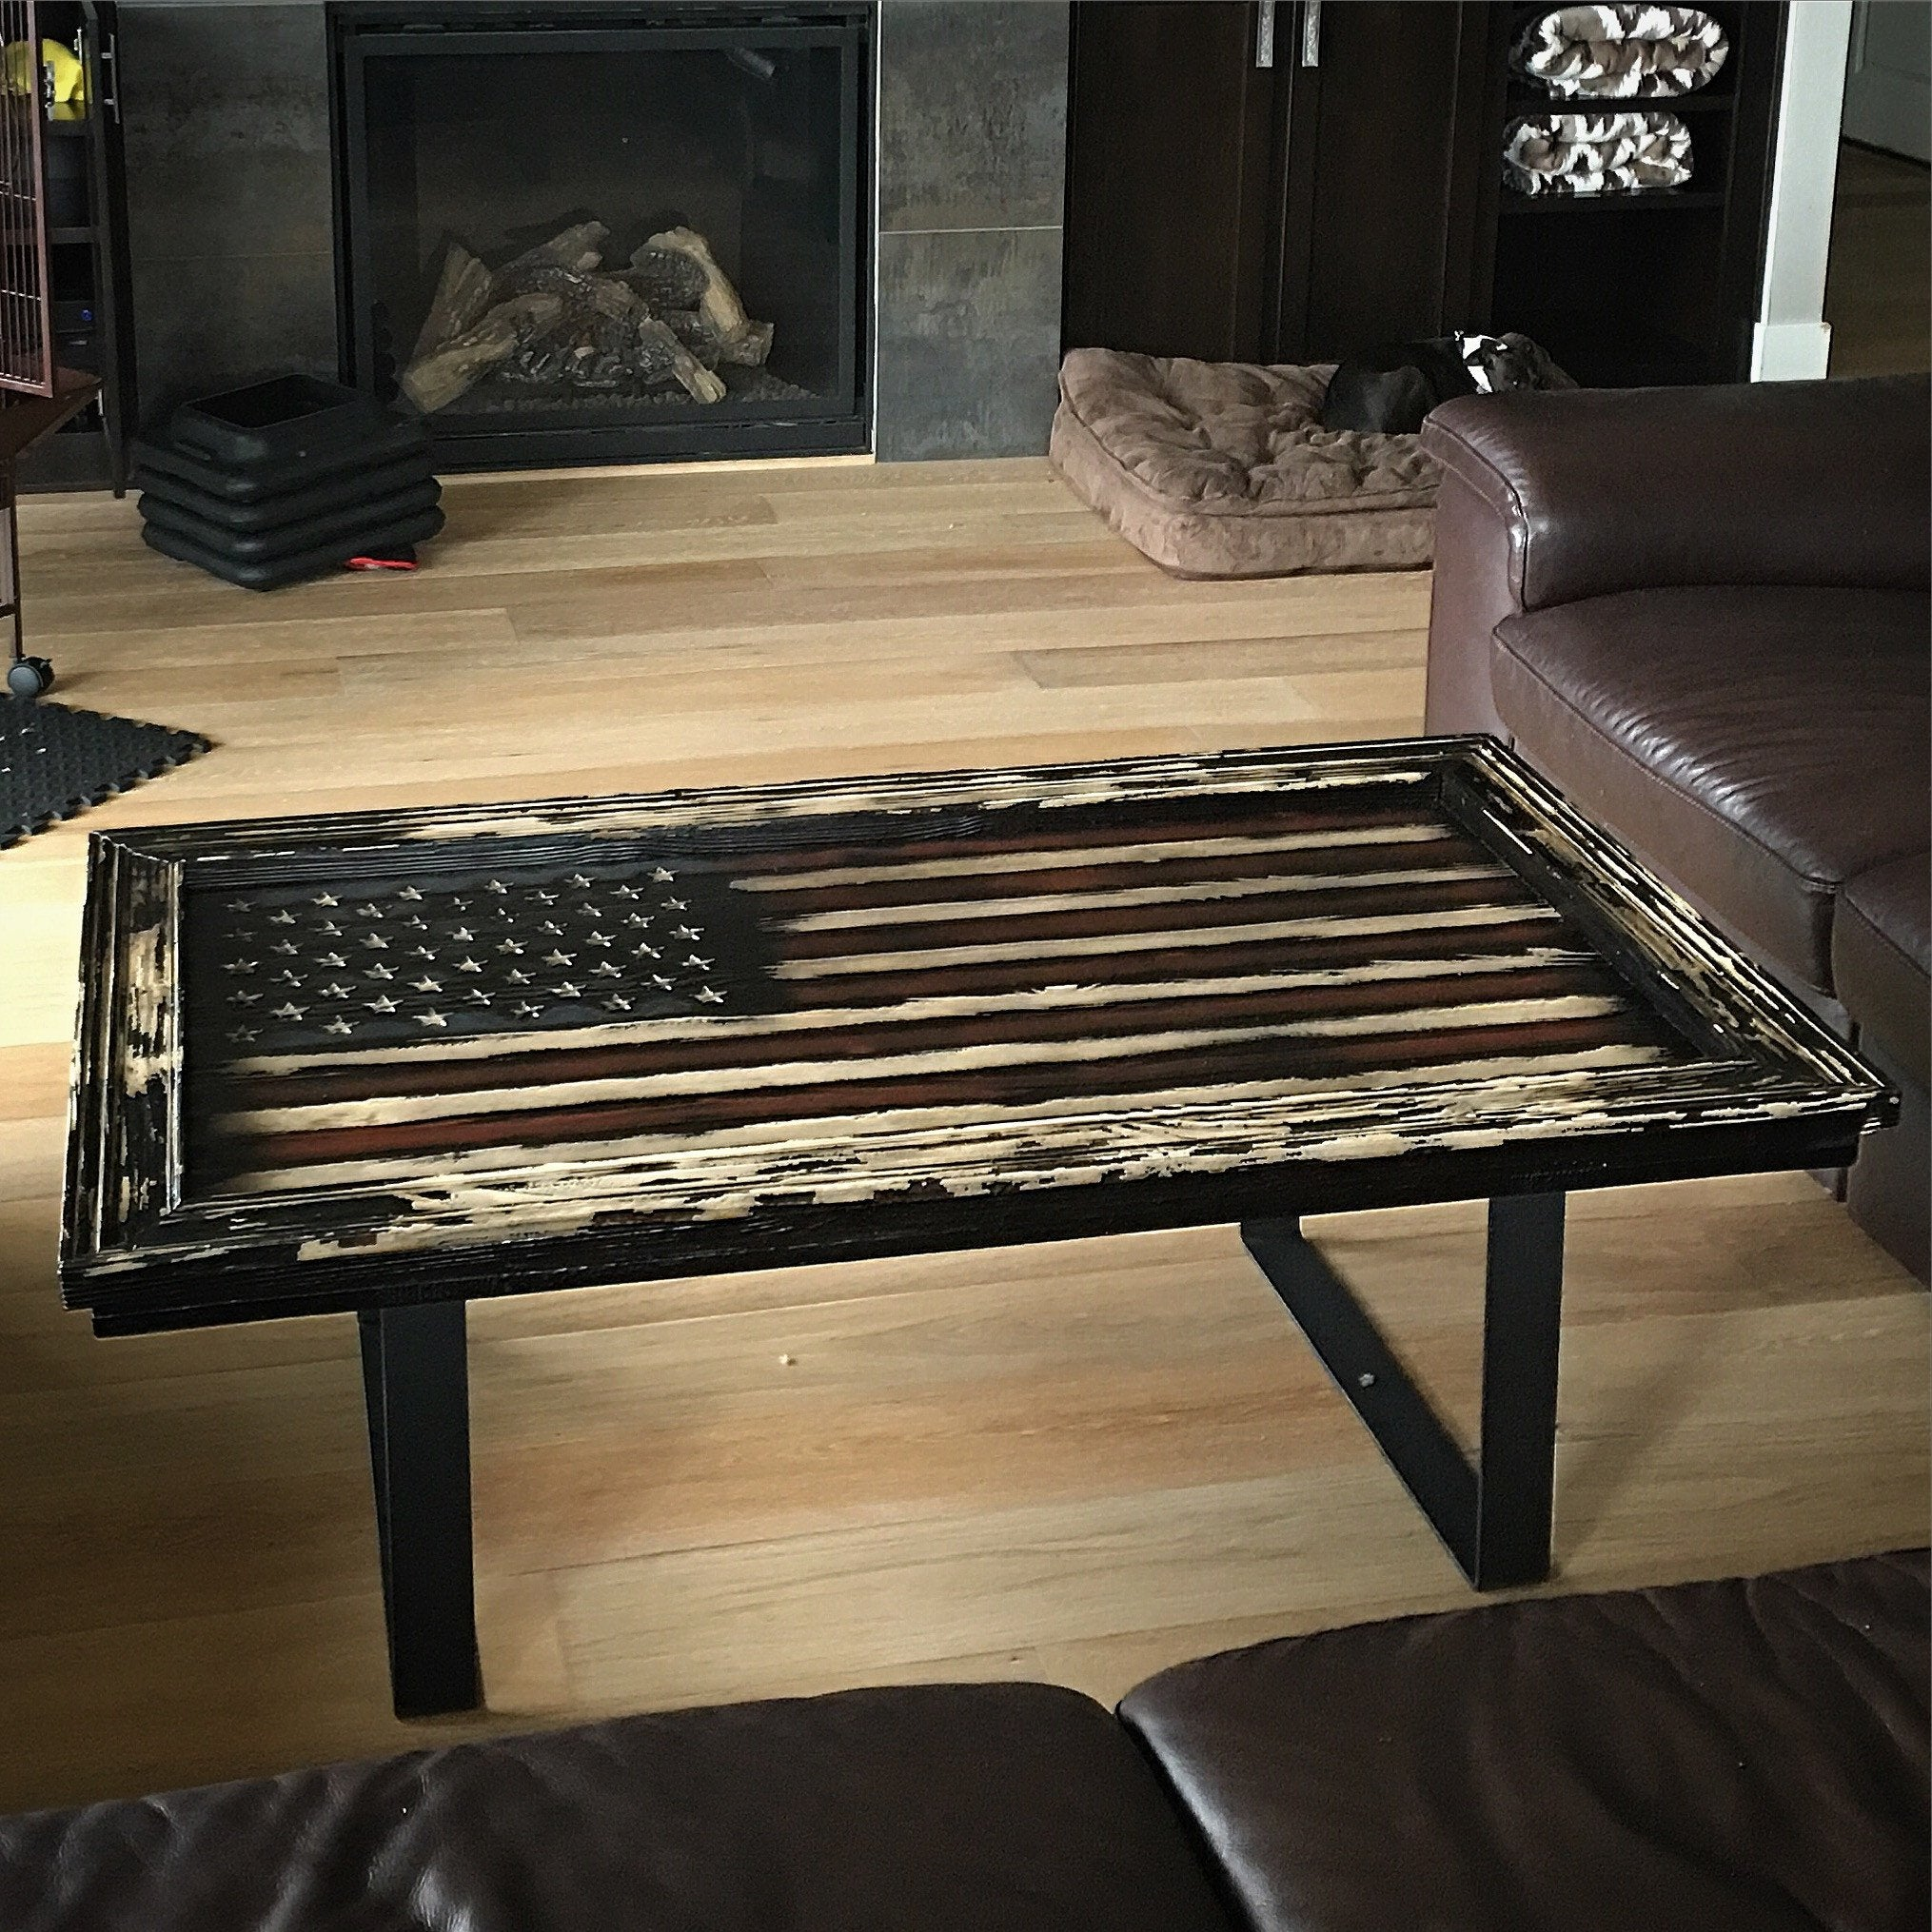 Colonial Freedom American Flag Coffee Table